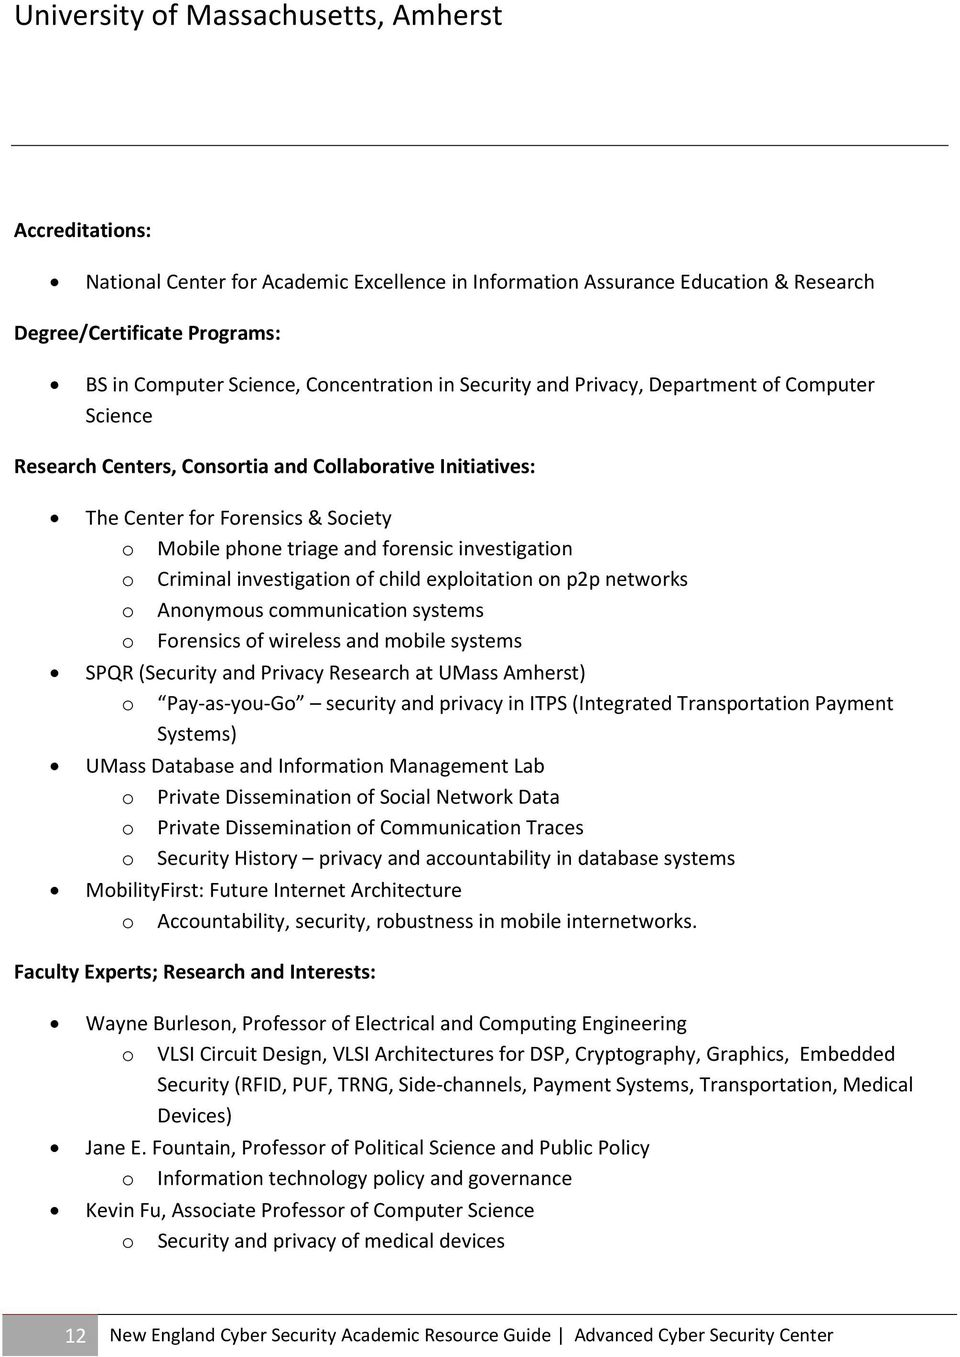 investigation o Criminal investigation of child exploitation on p2p networks o Anonymous communication systems o Forensics of wireless and mobile systems SPQR (Security and Privacy Research at UMass